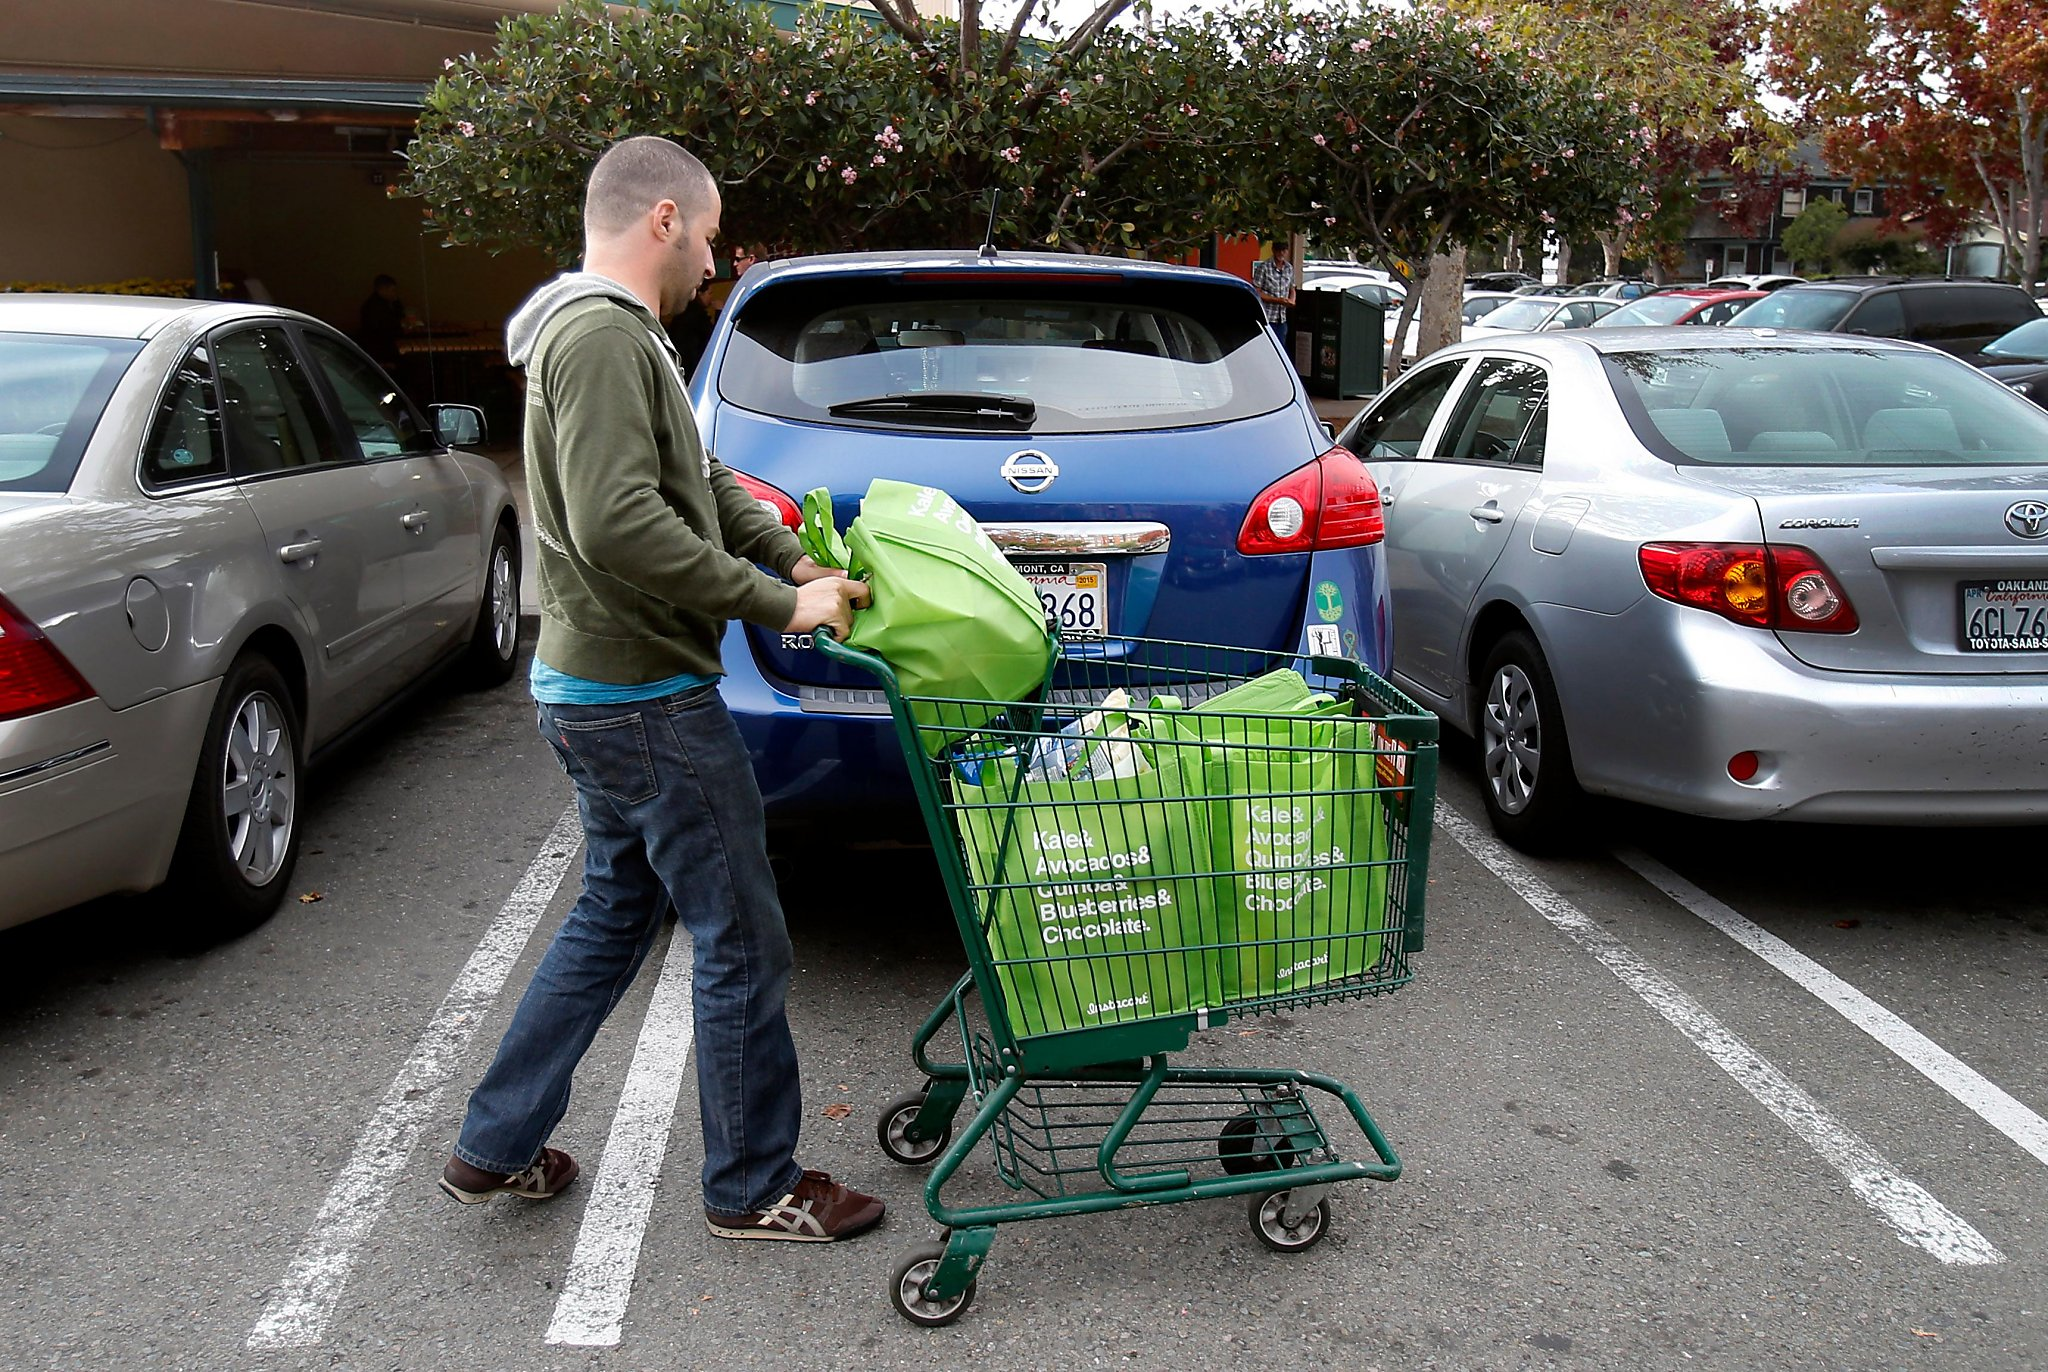 Instacart, Whole Foods to part ways - SFChronicle com